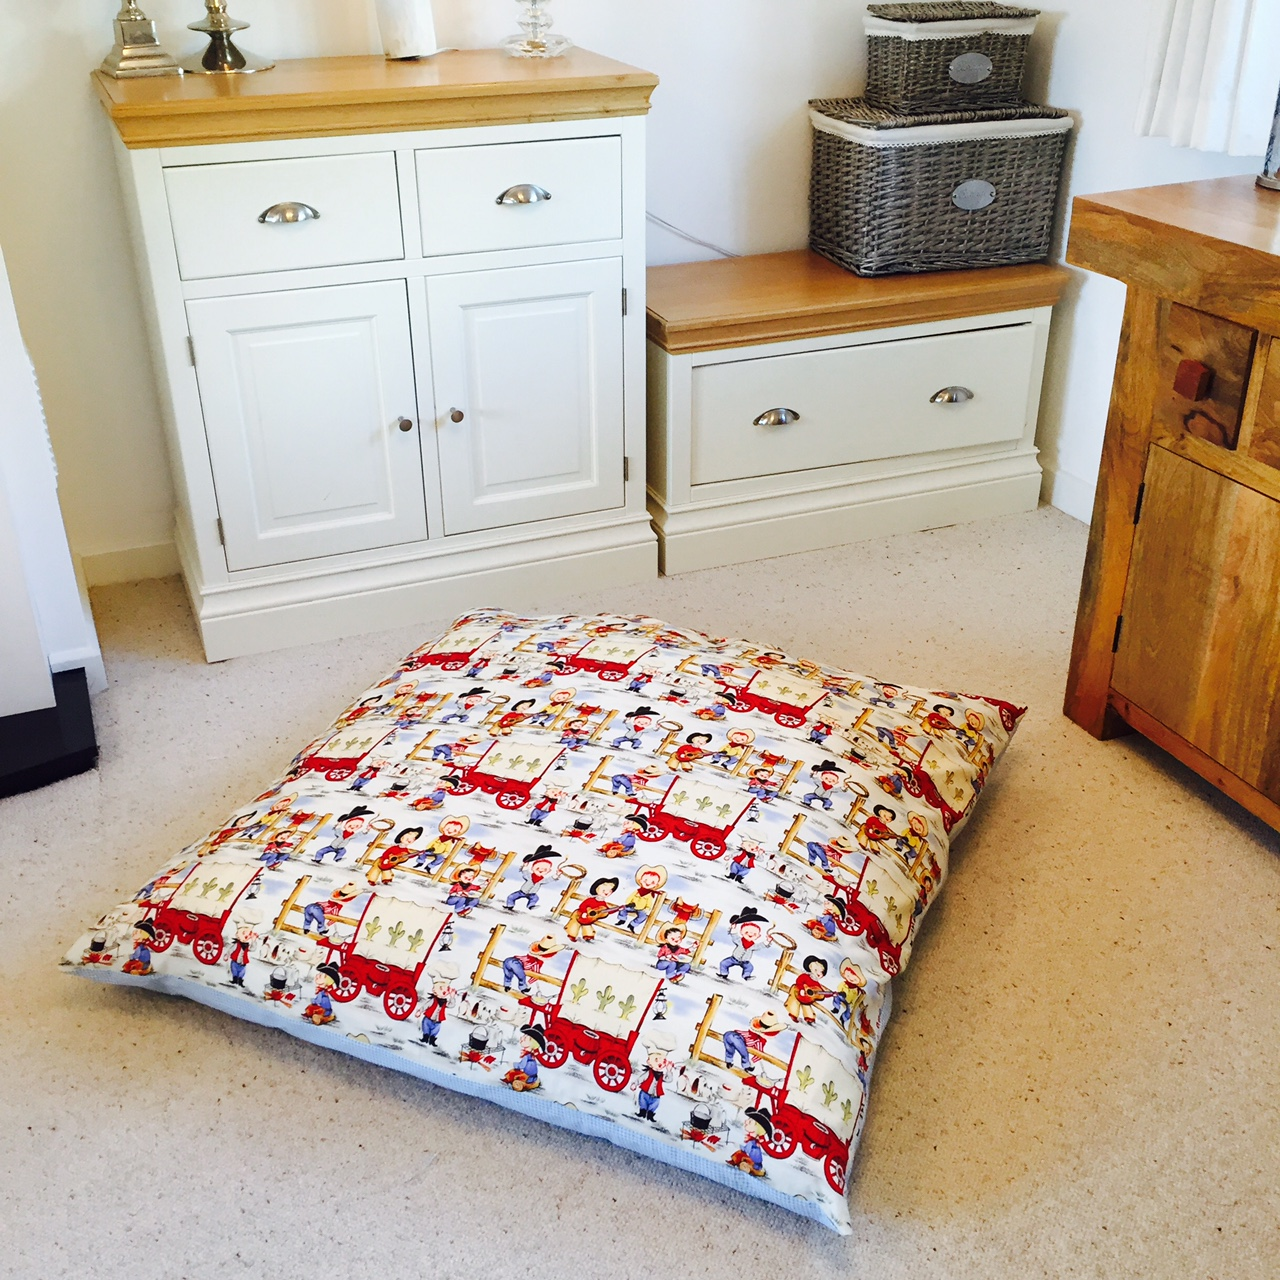 Childrens Floor Cushions - Huge Squishy Cushions By Samuel And Rigby